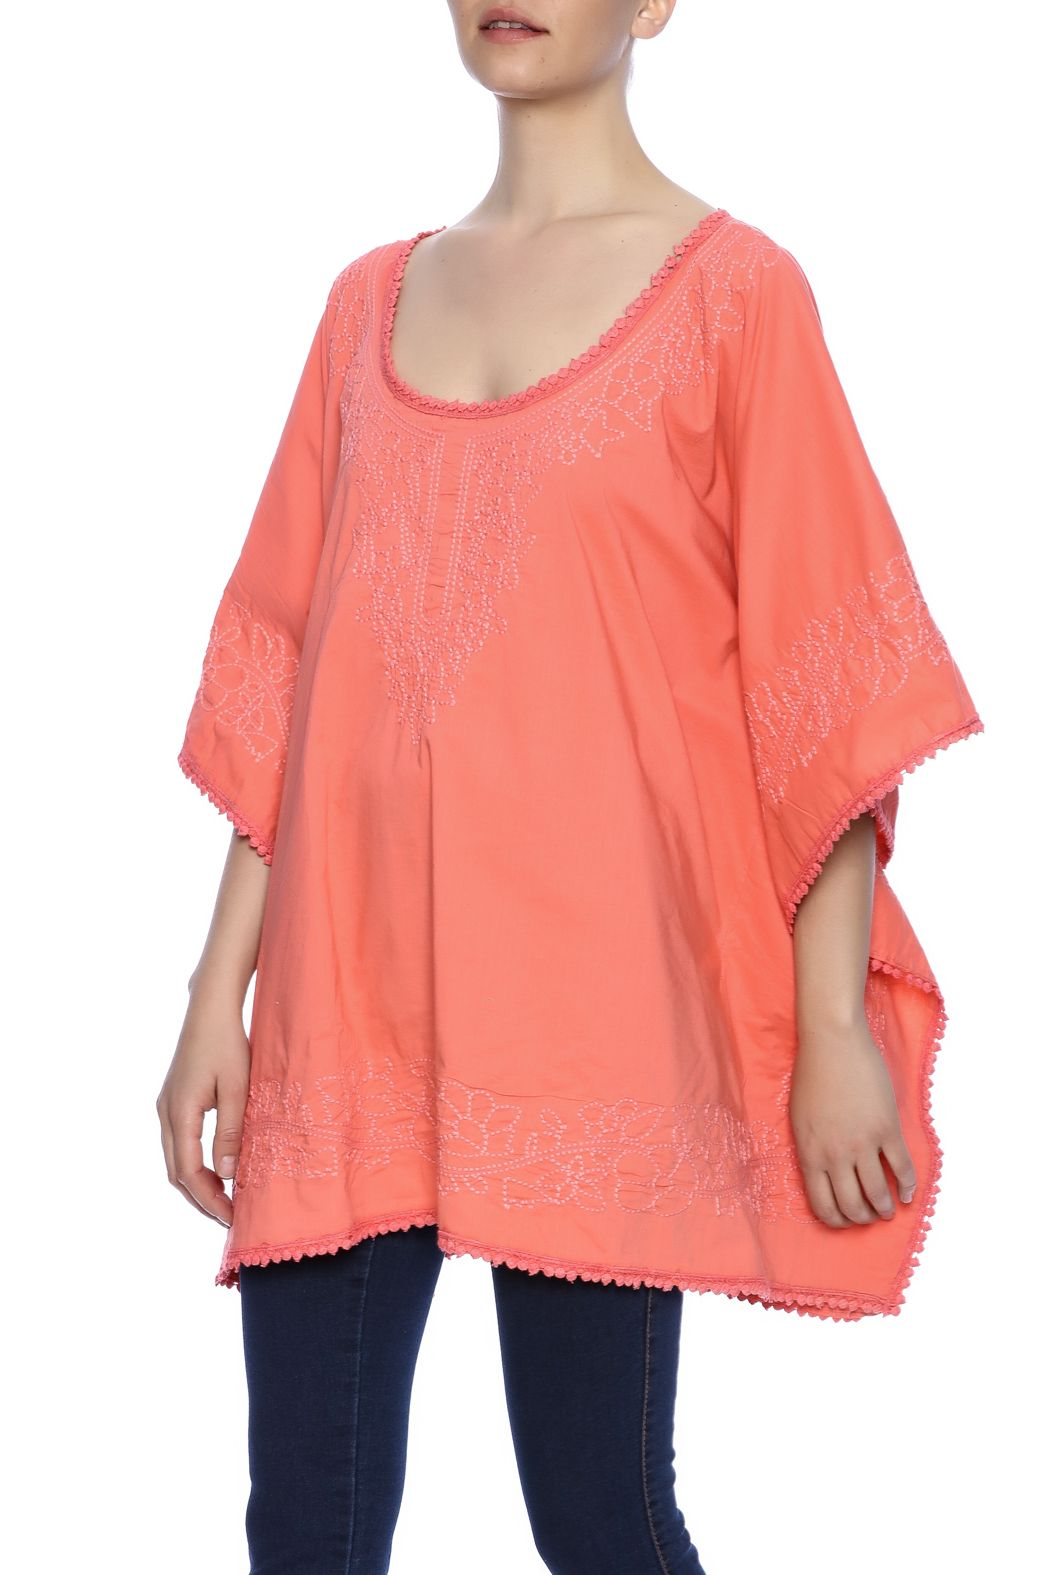 1f7a67c14ed Self embroidered with caftan with 3/4 sleeves, round neckline and a laced  hem. Embroidered Lace Caftan by Raj Lotus. Clothing - Tops - Short Sleeve  Clothing ...